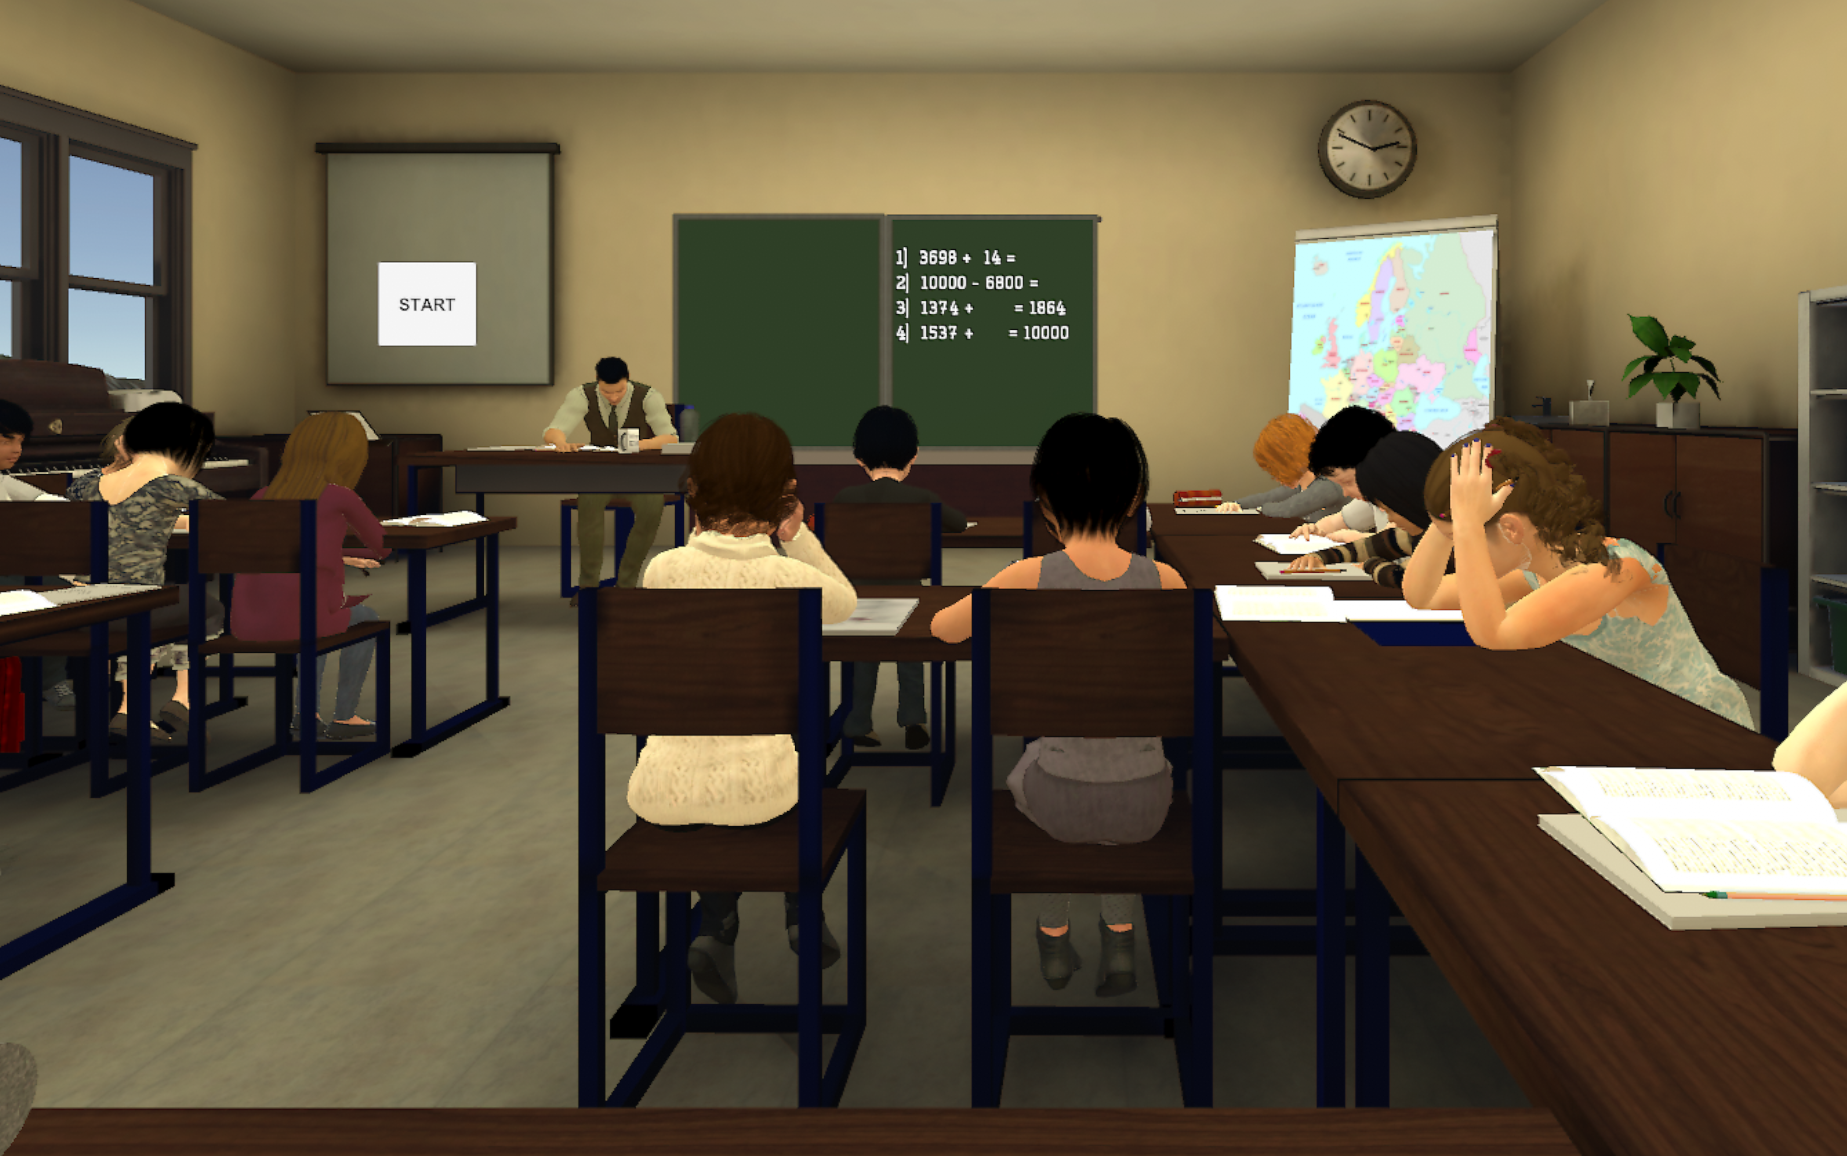 First-person immersive classroom environment to assess and train attention.